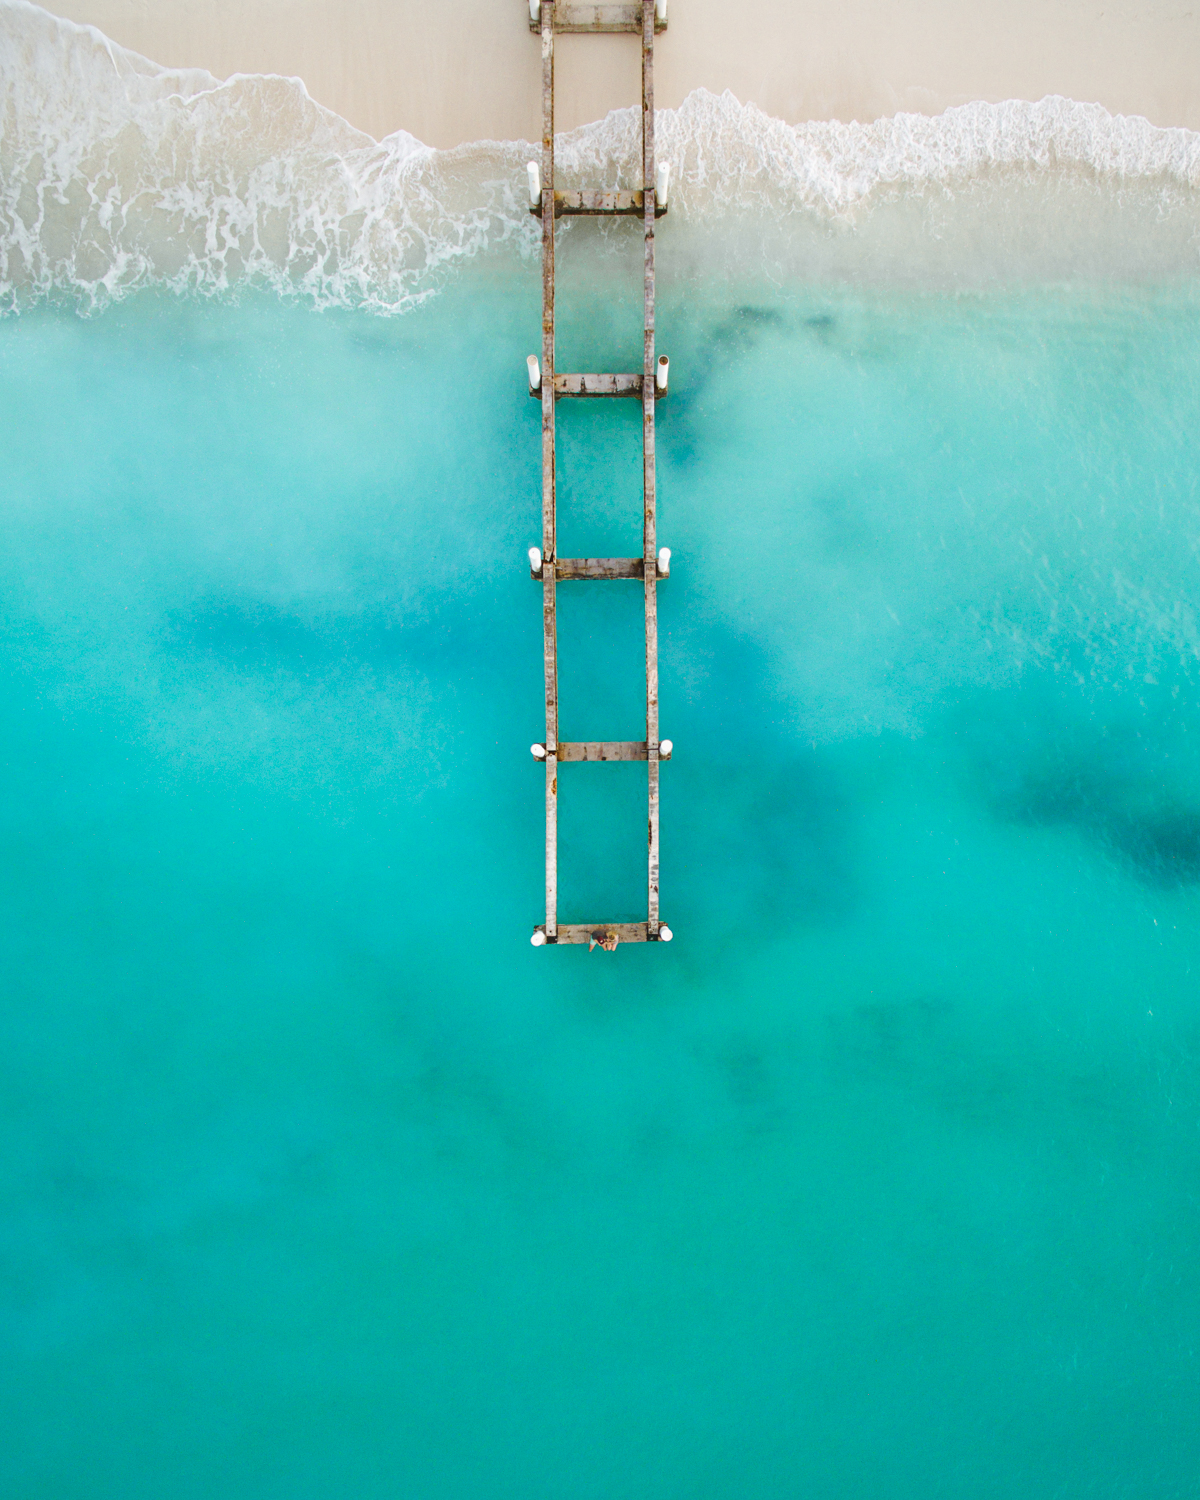 Grace Bay Turks and Caicos Drone